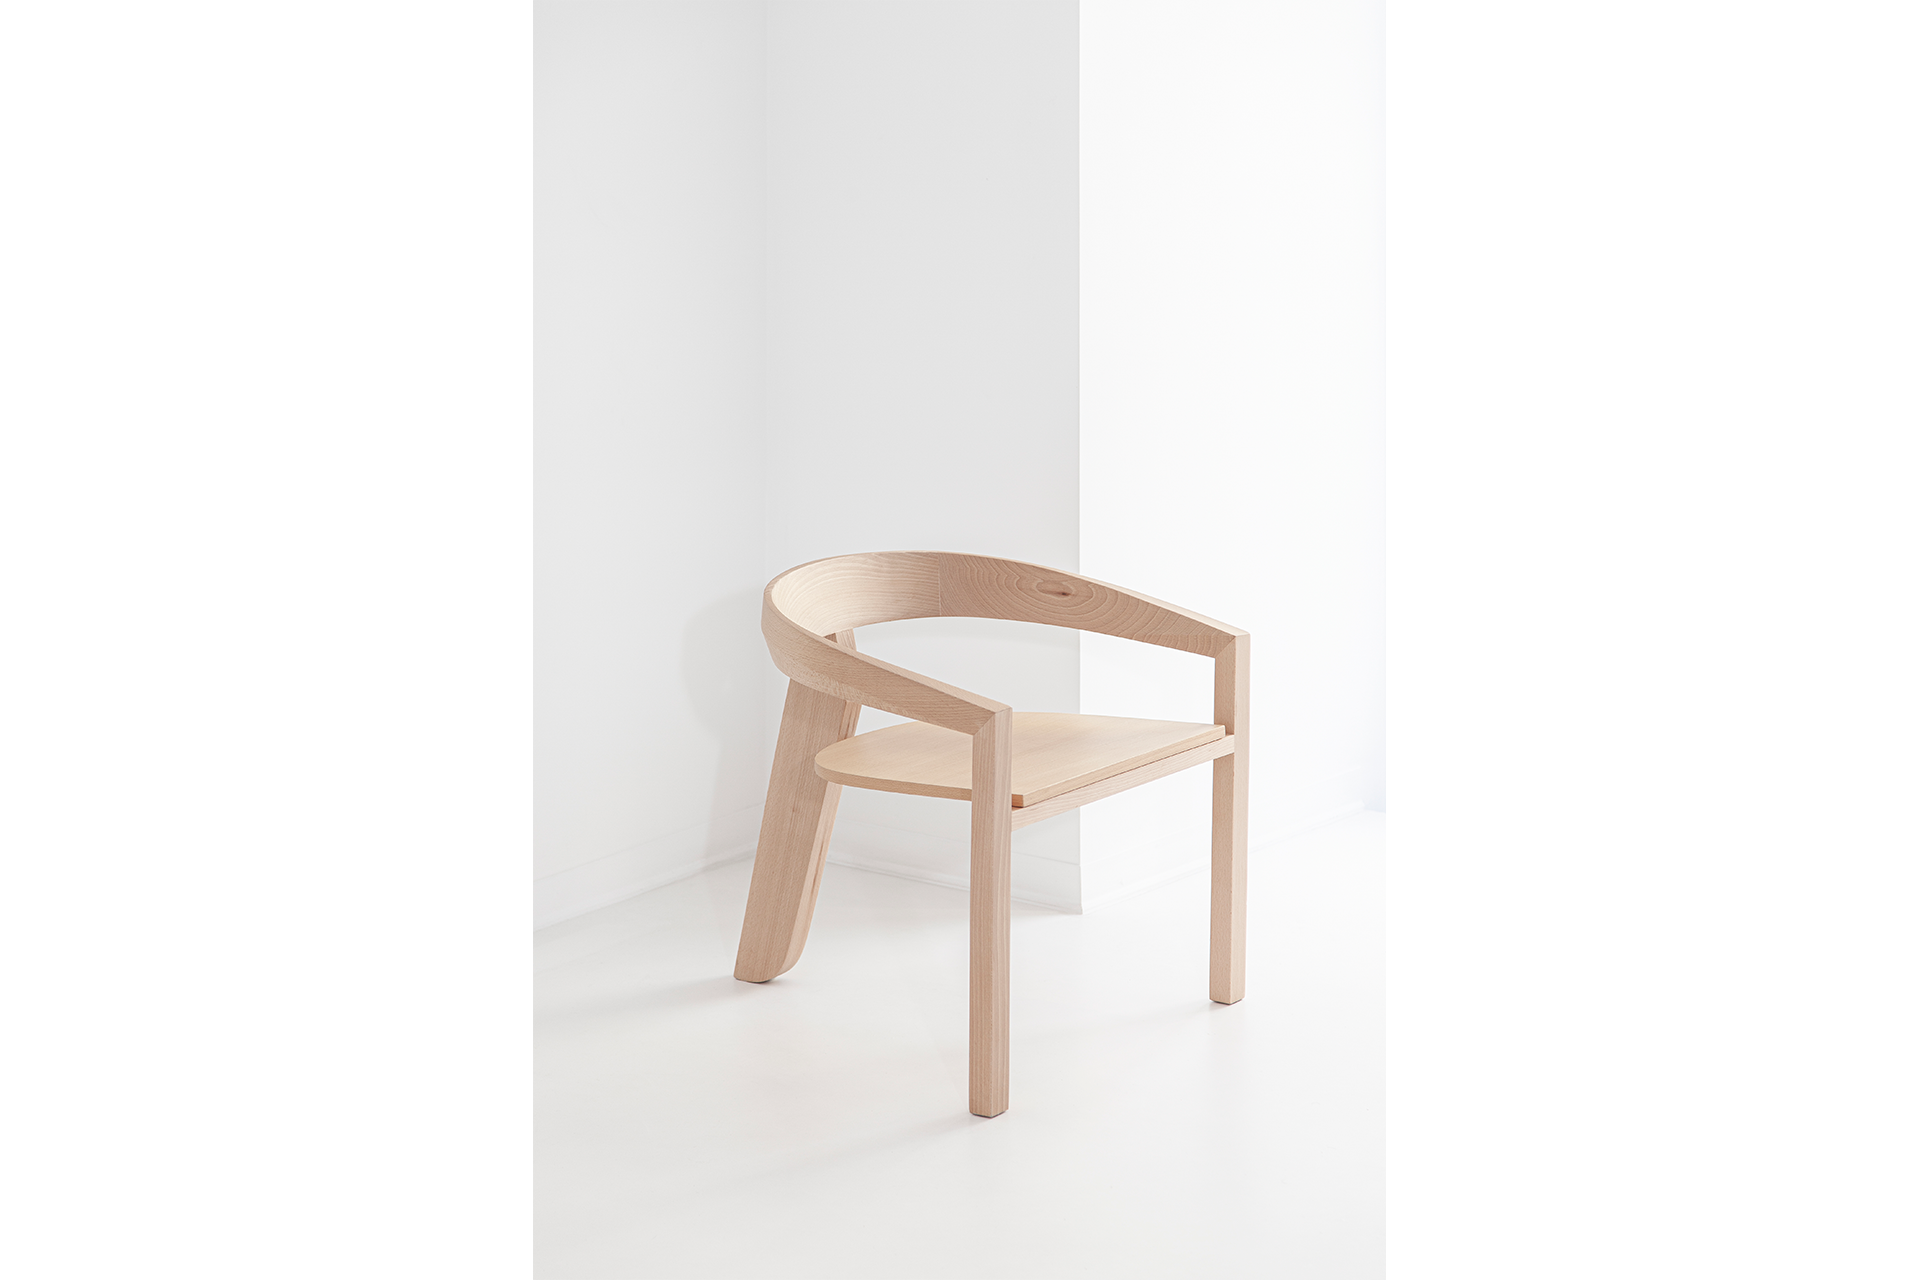 Lounge Chair Side View - DESIGN BY MIGUEL SOEIRO